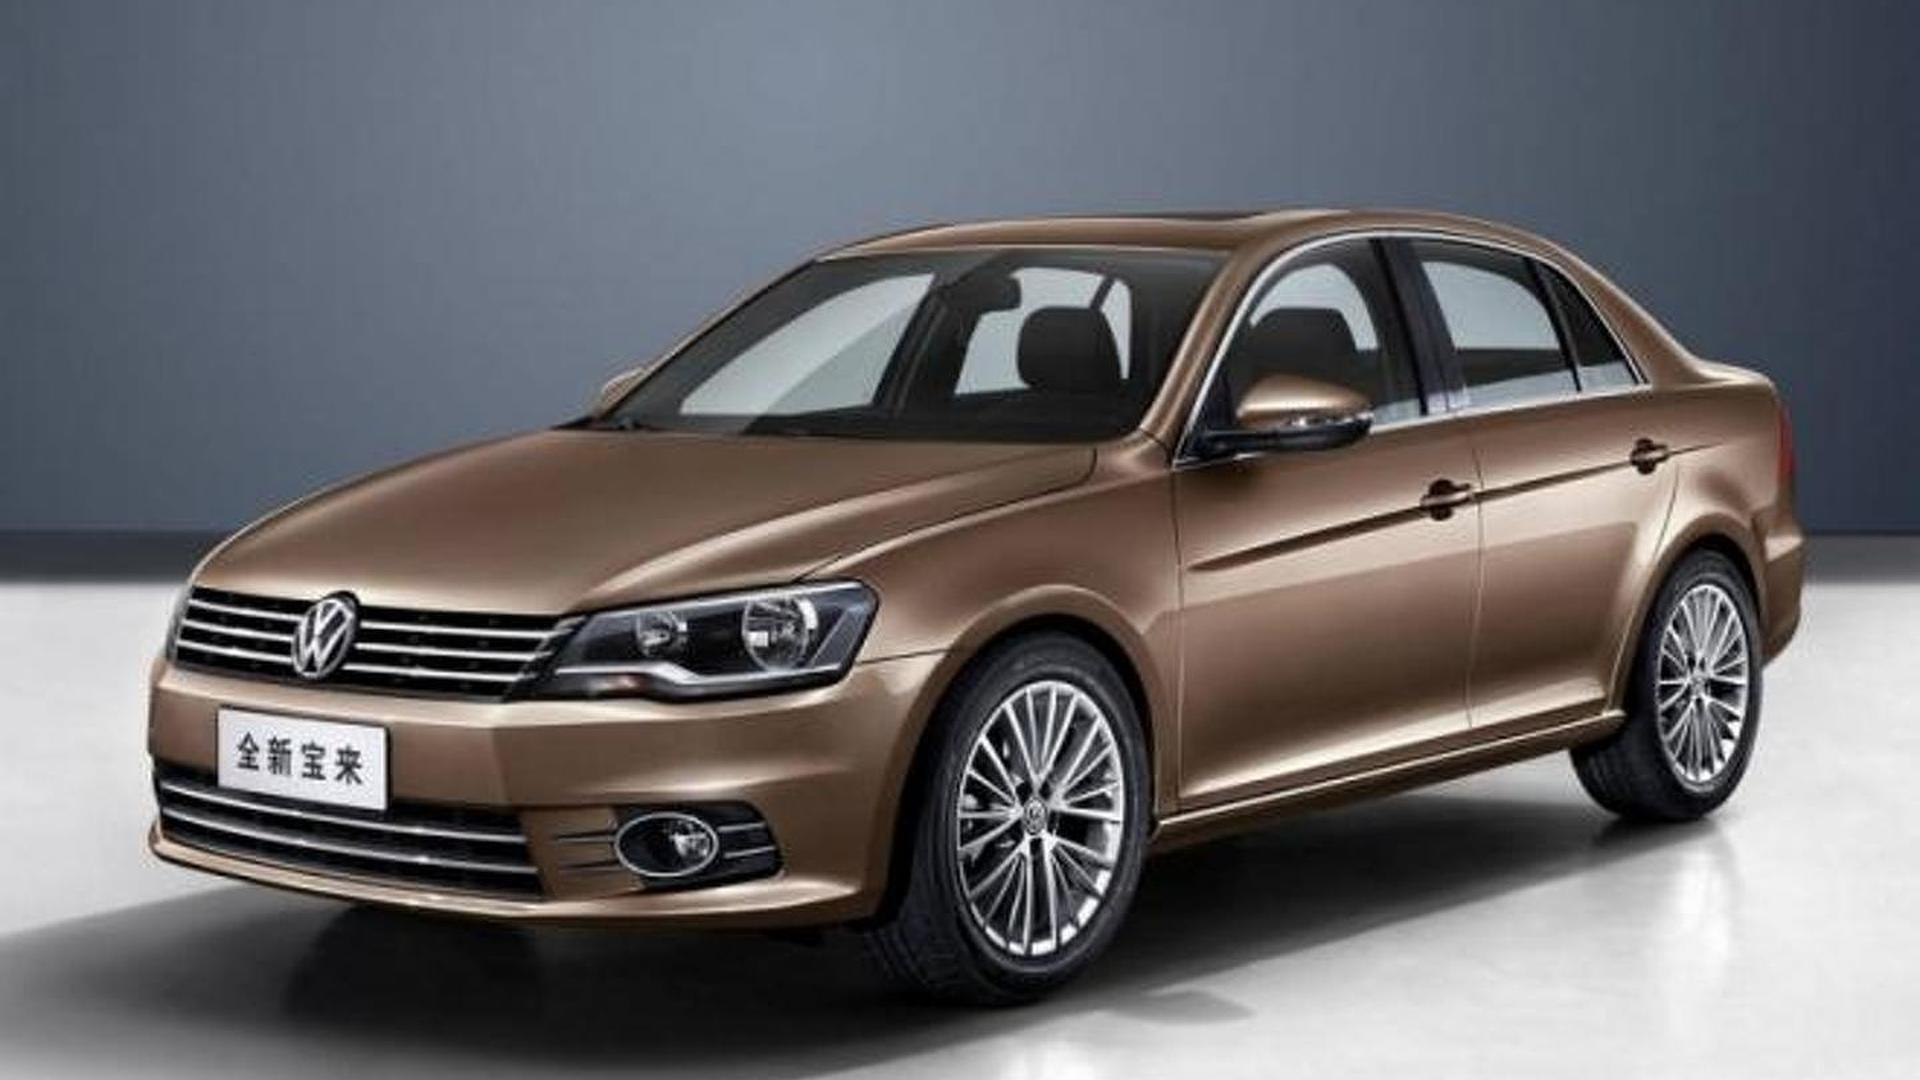 2013 Volkswagen Bora Launched In China Accord Fuse Box